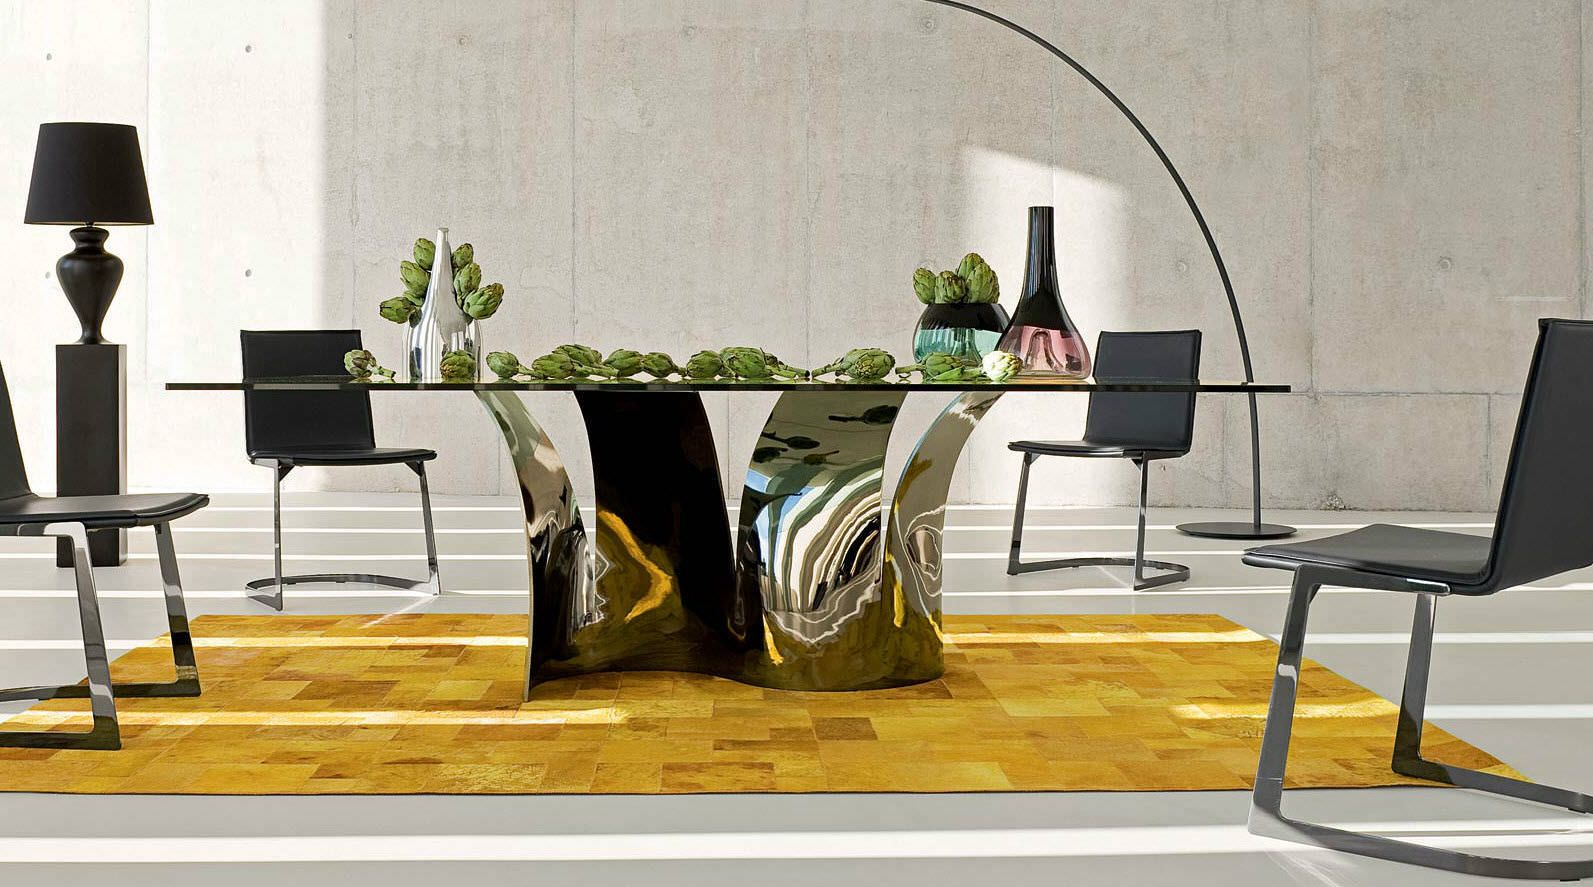 Original design glass table les contemporains voiles by - Table de salle a manger roche bobois ...